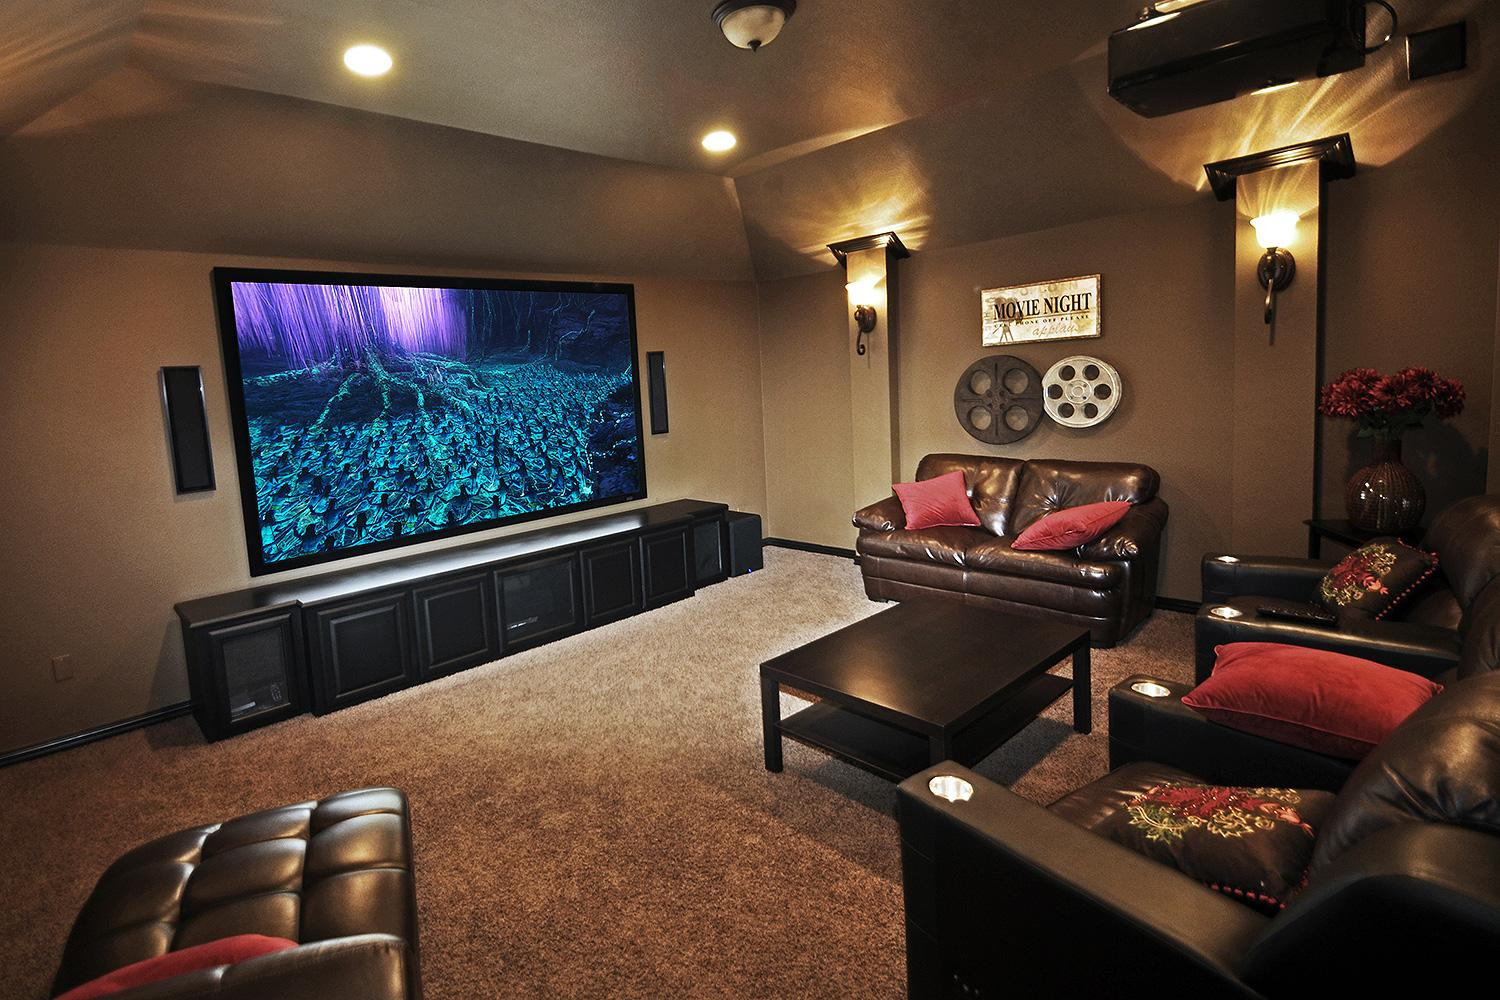 how to build a 3d home theater for $3000 | digital trends